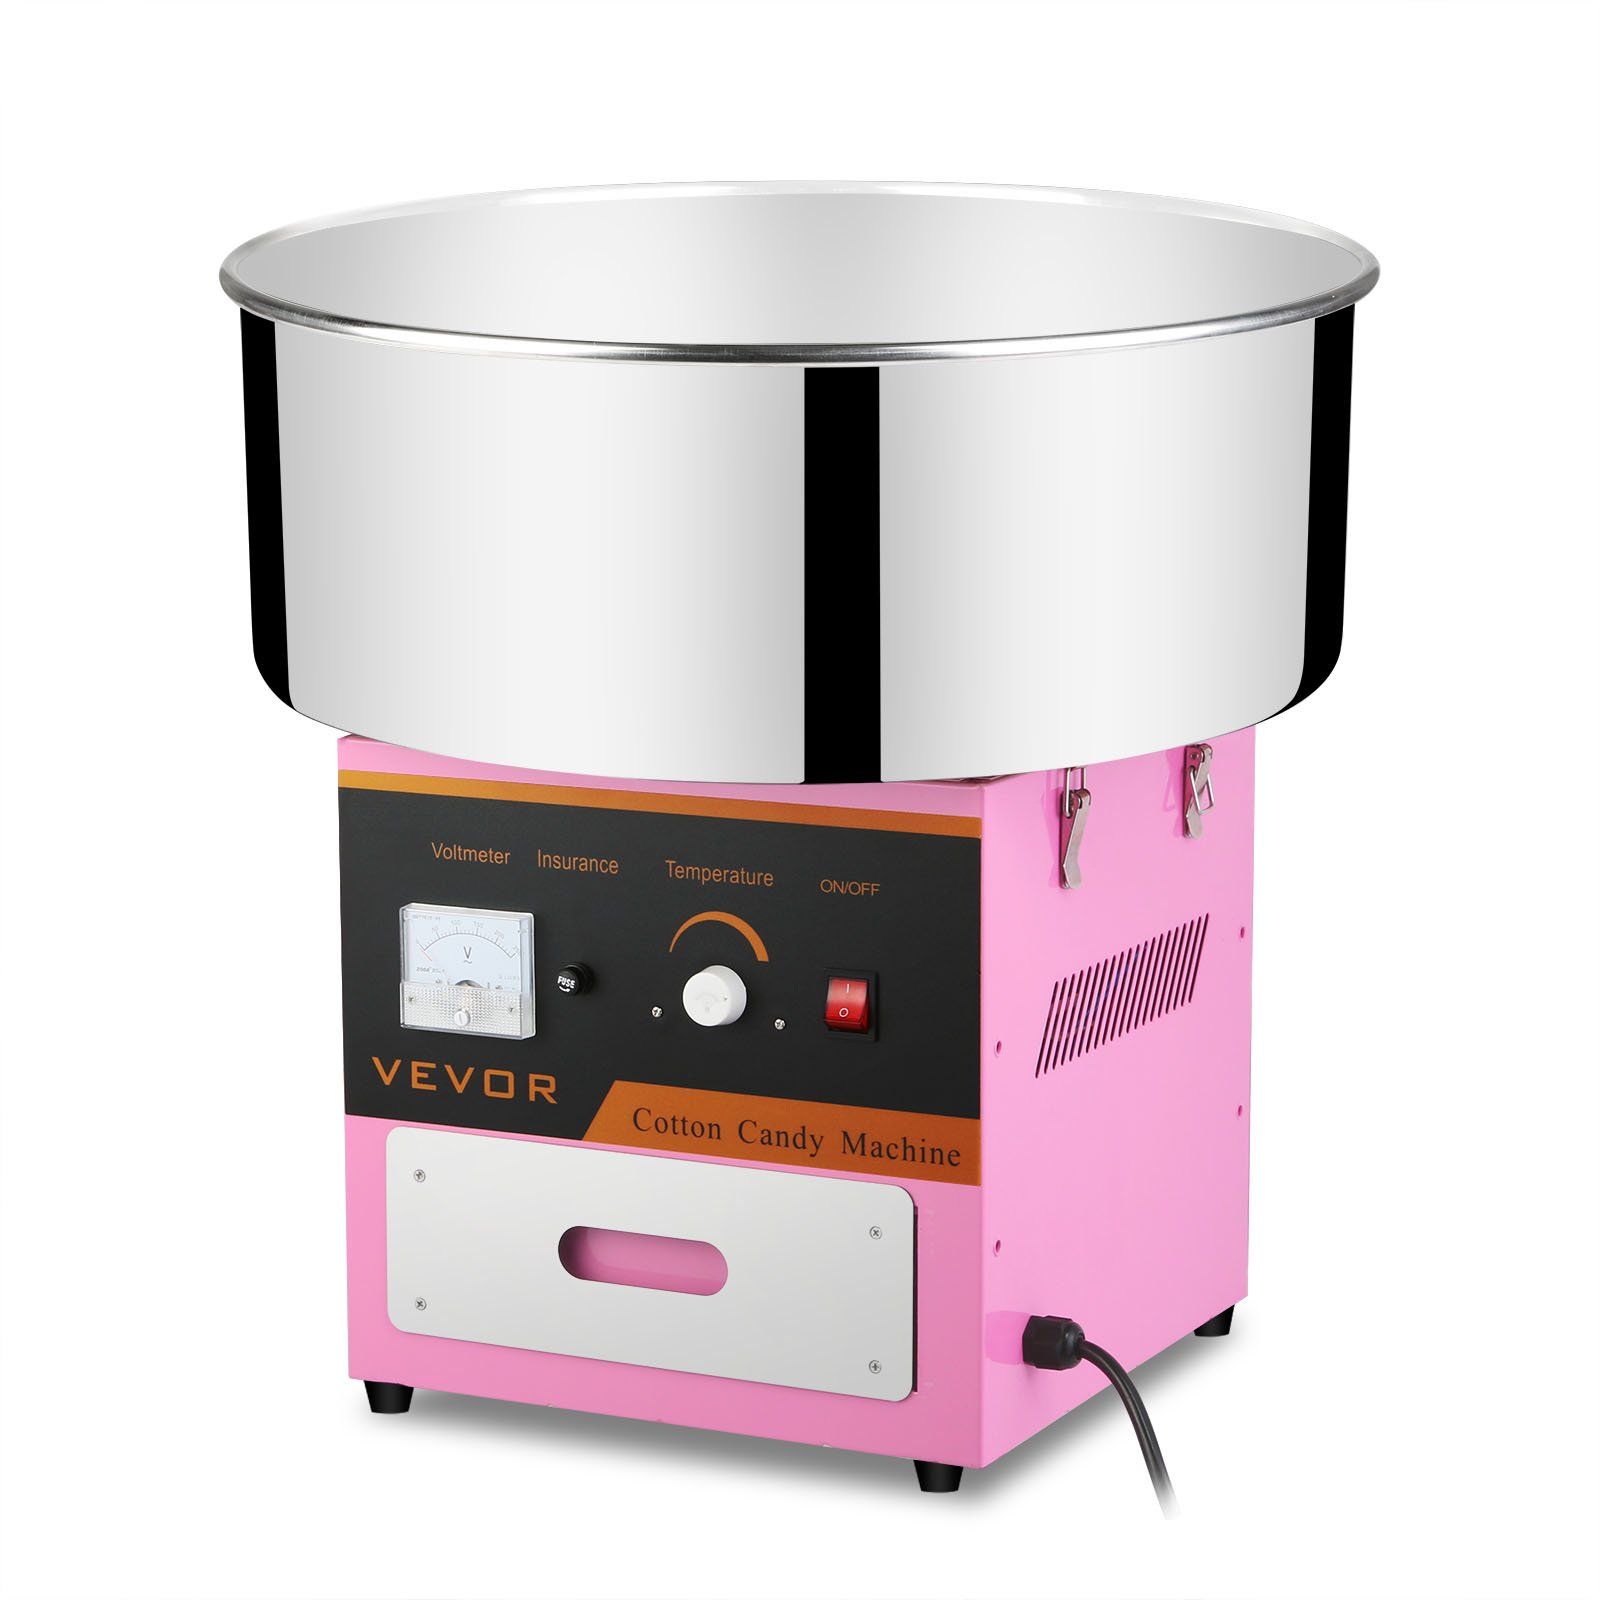 Mophorn Electric Cotton Candy Machine with Stainless Steel Tray Cotton Candy Maker for Kids Cotton Commercial Candy Machine 110V Perfect for Various Parties (Cotton Candy Machine)